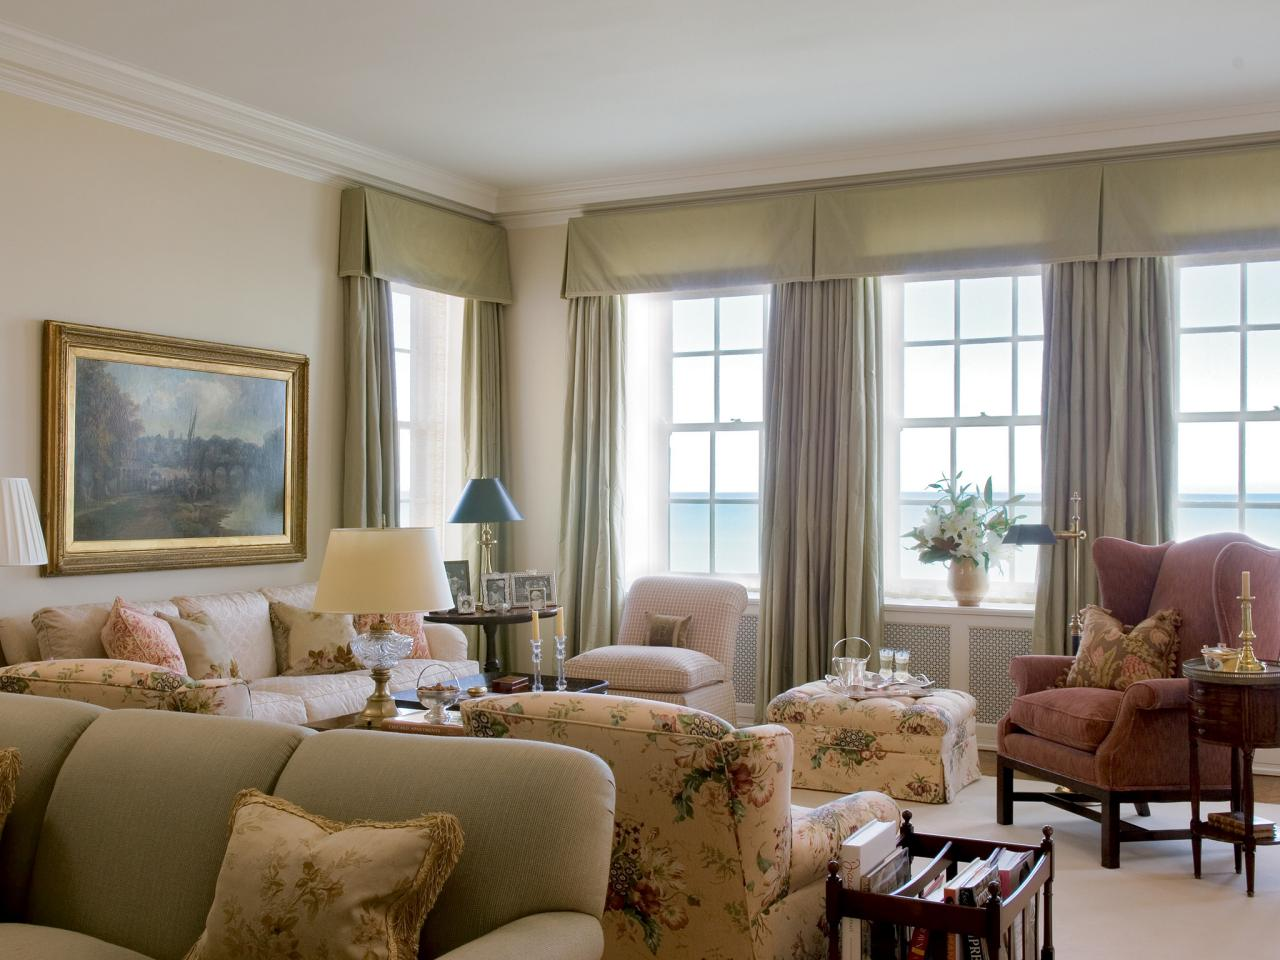 Photos hgtv for What is a window treatment